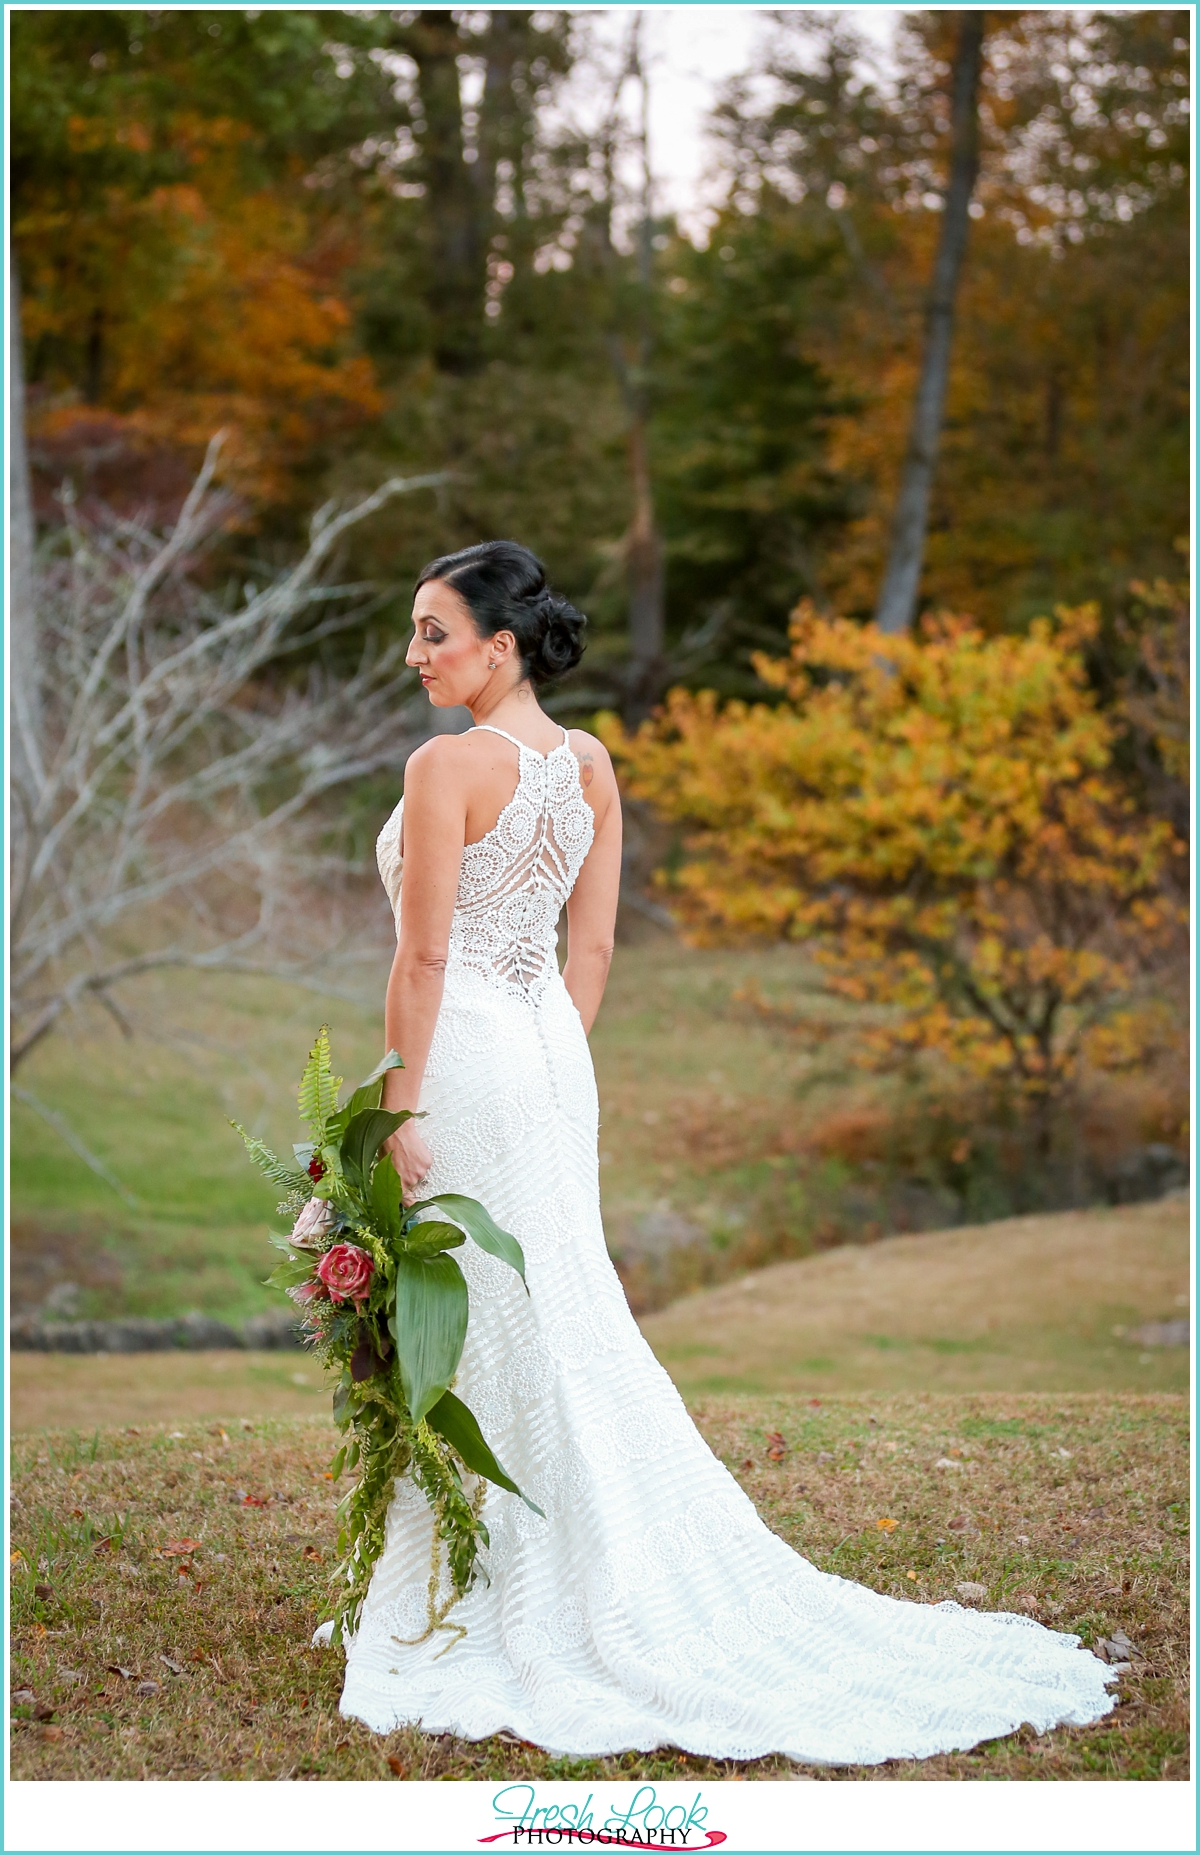 Elegant bridal portrait on the farm